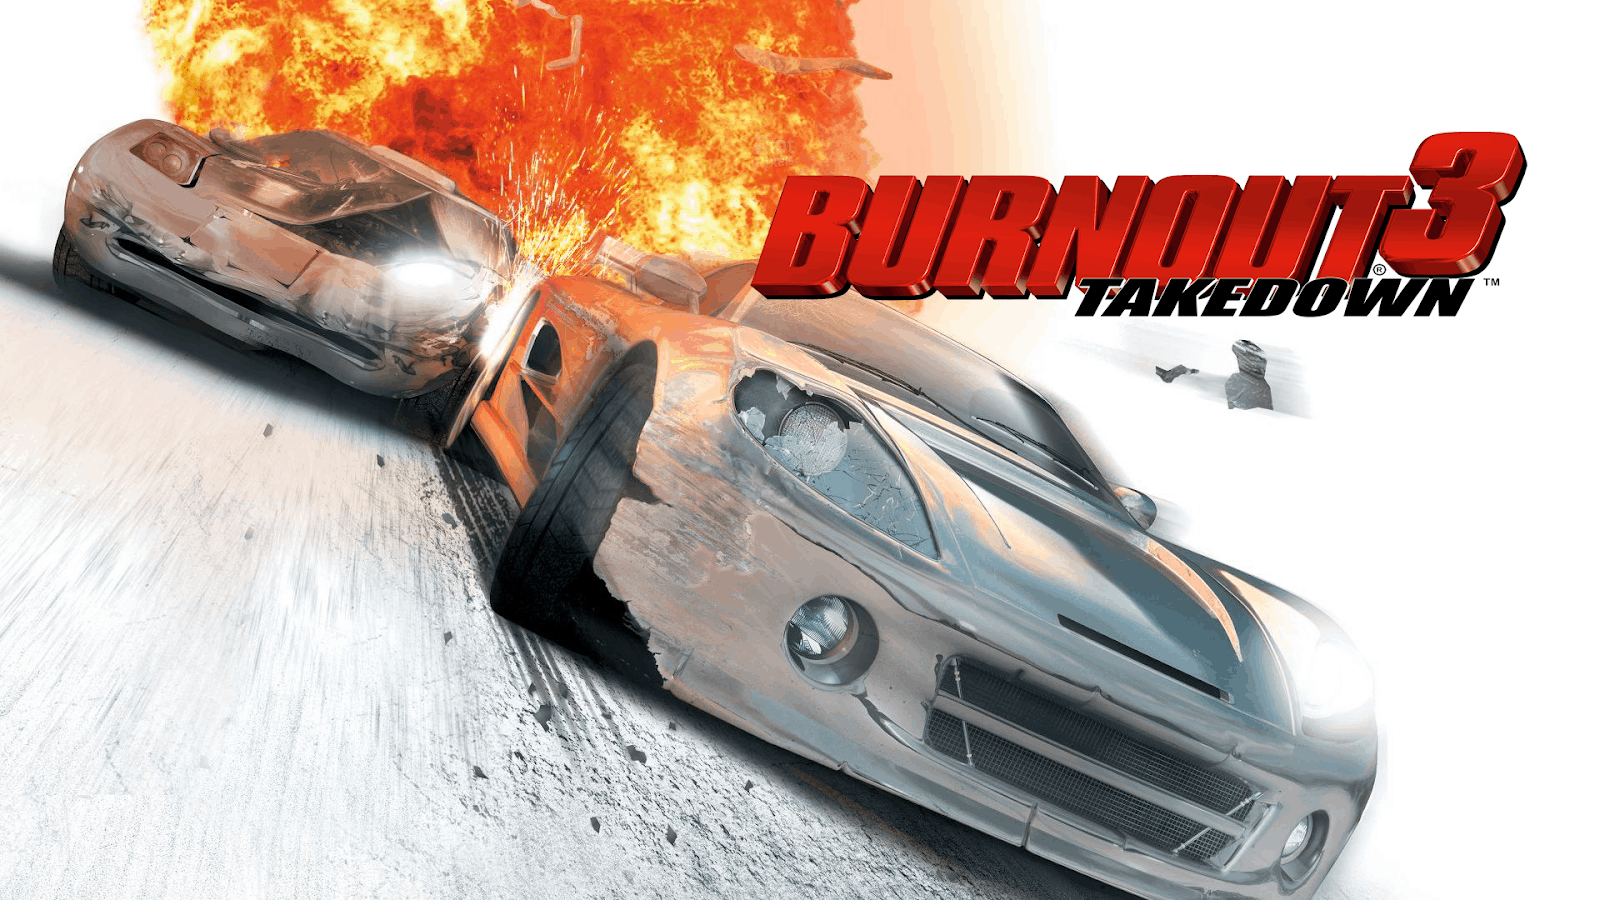 Best Racing Games - Burnout 3 Takedown